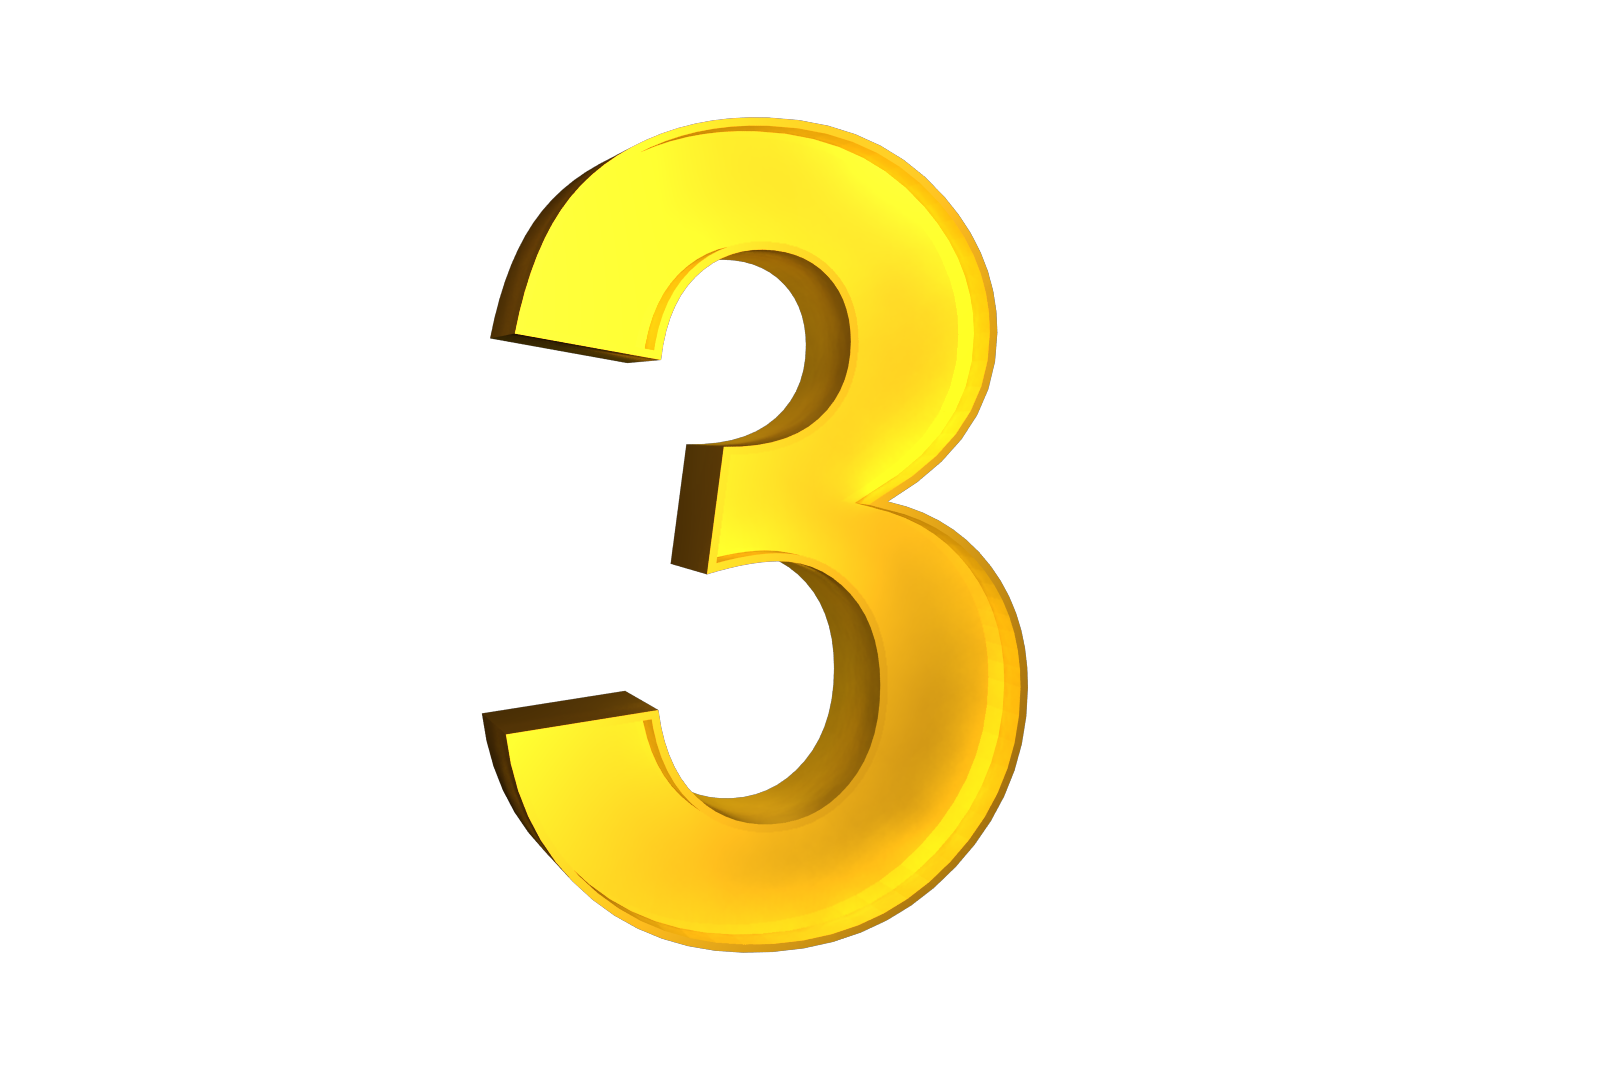 3d numbers png. Number images free download